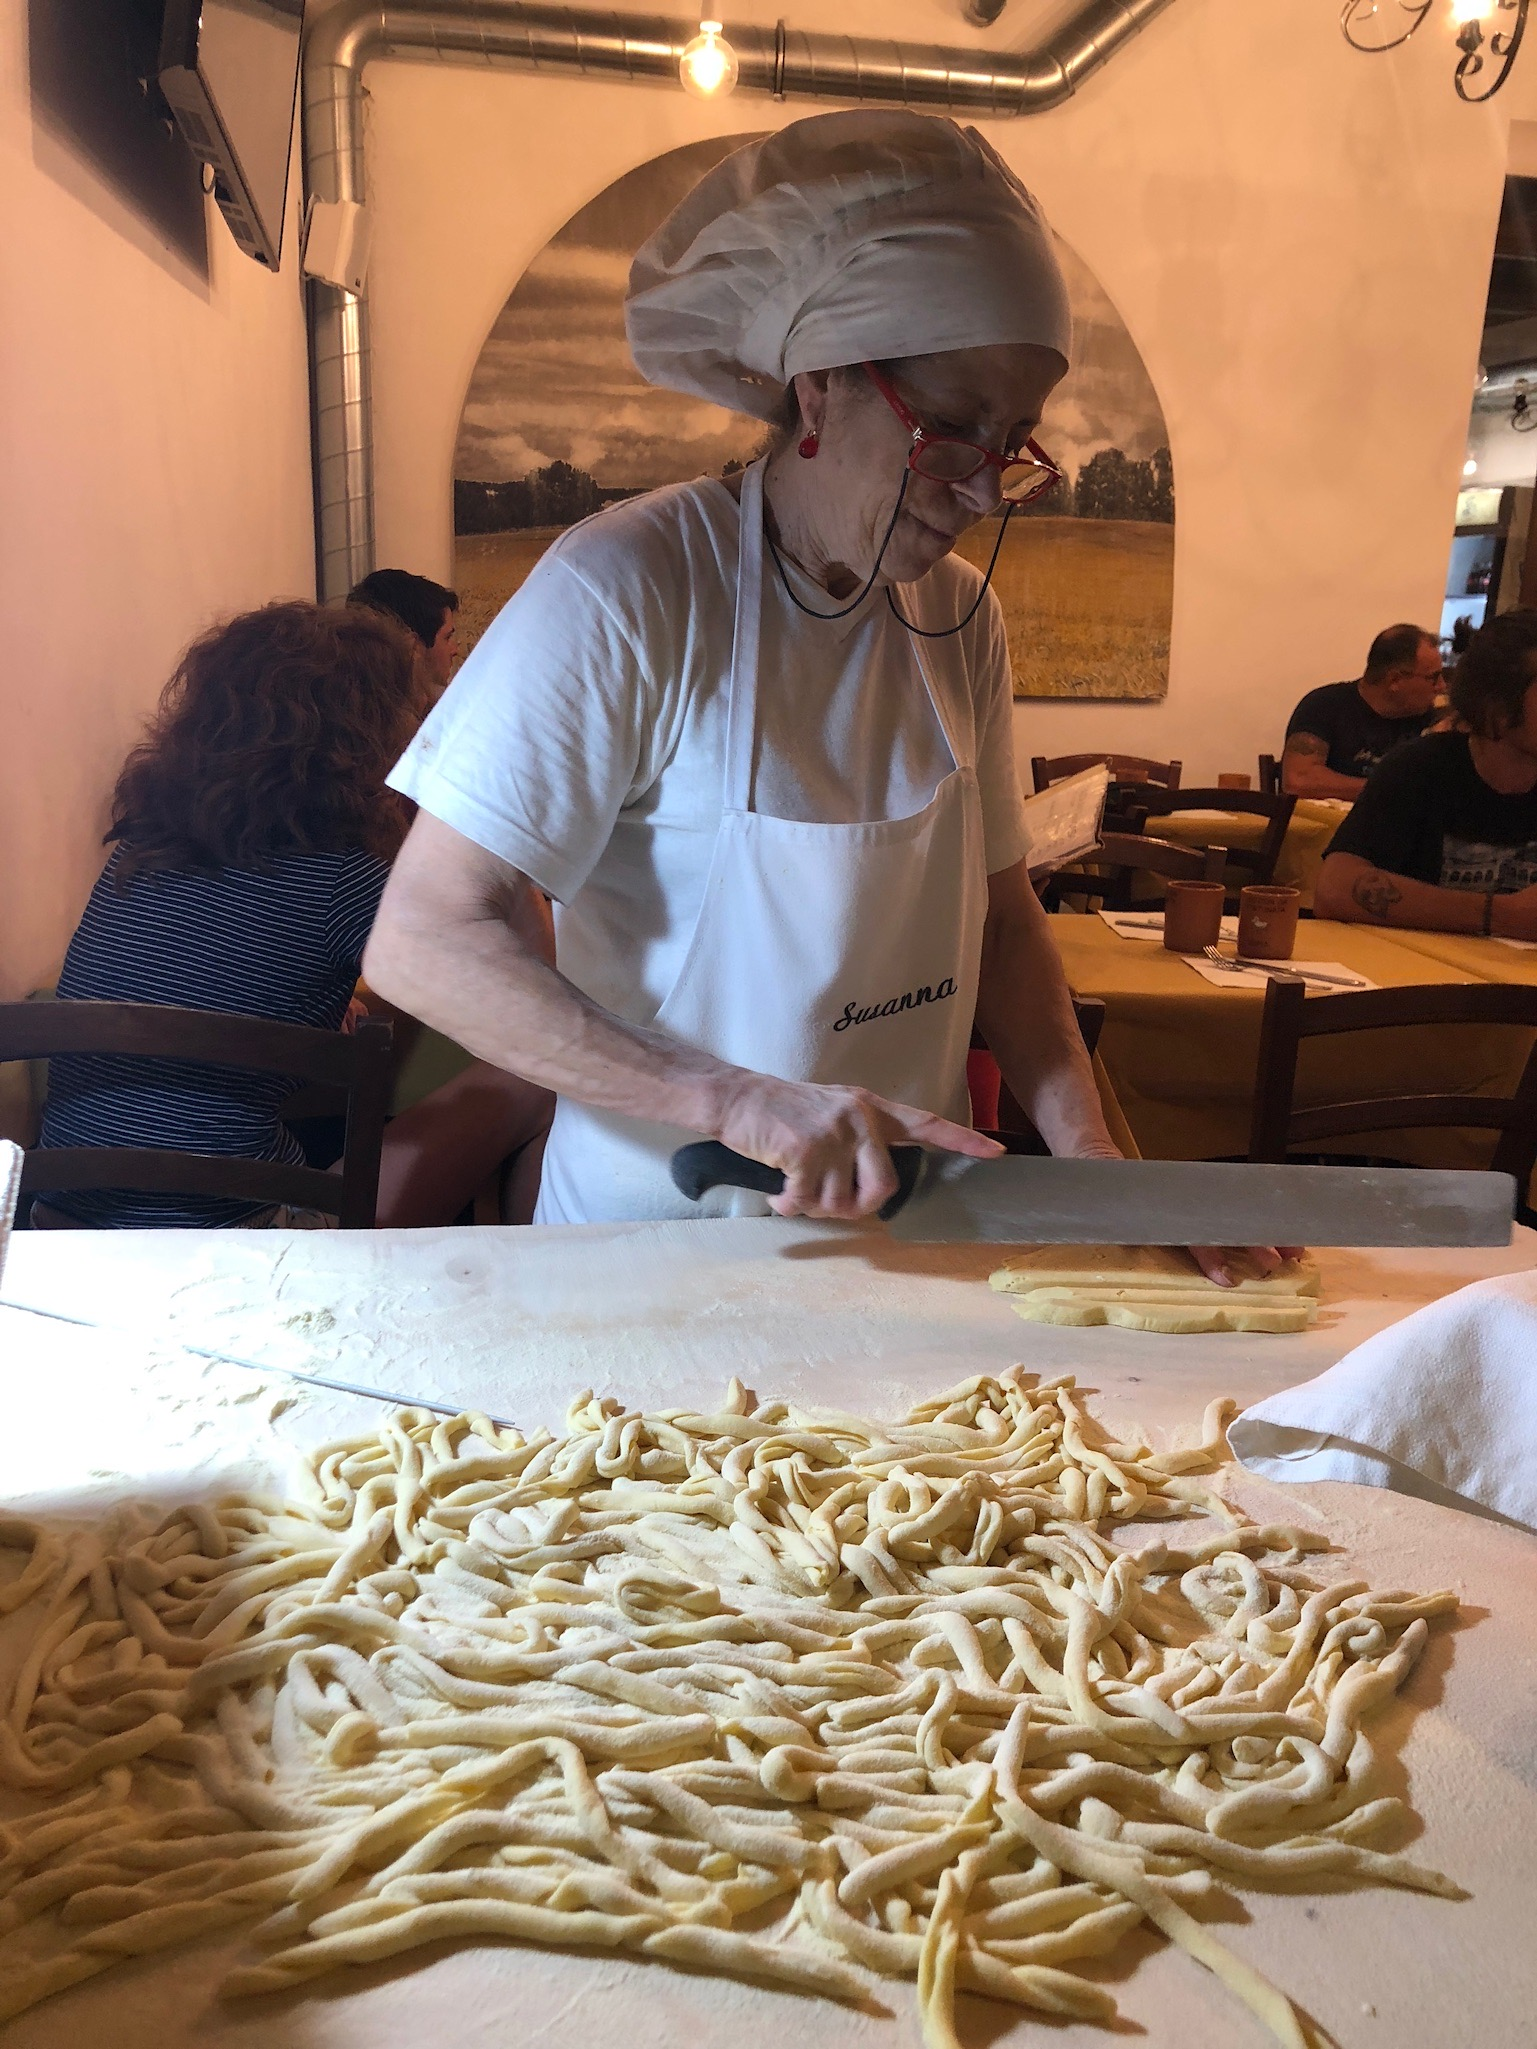 What a treat to watch an Italian chef hand roll the pasta before it was cooked for our dinner! See below for the finished product.